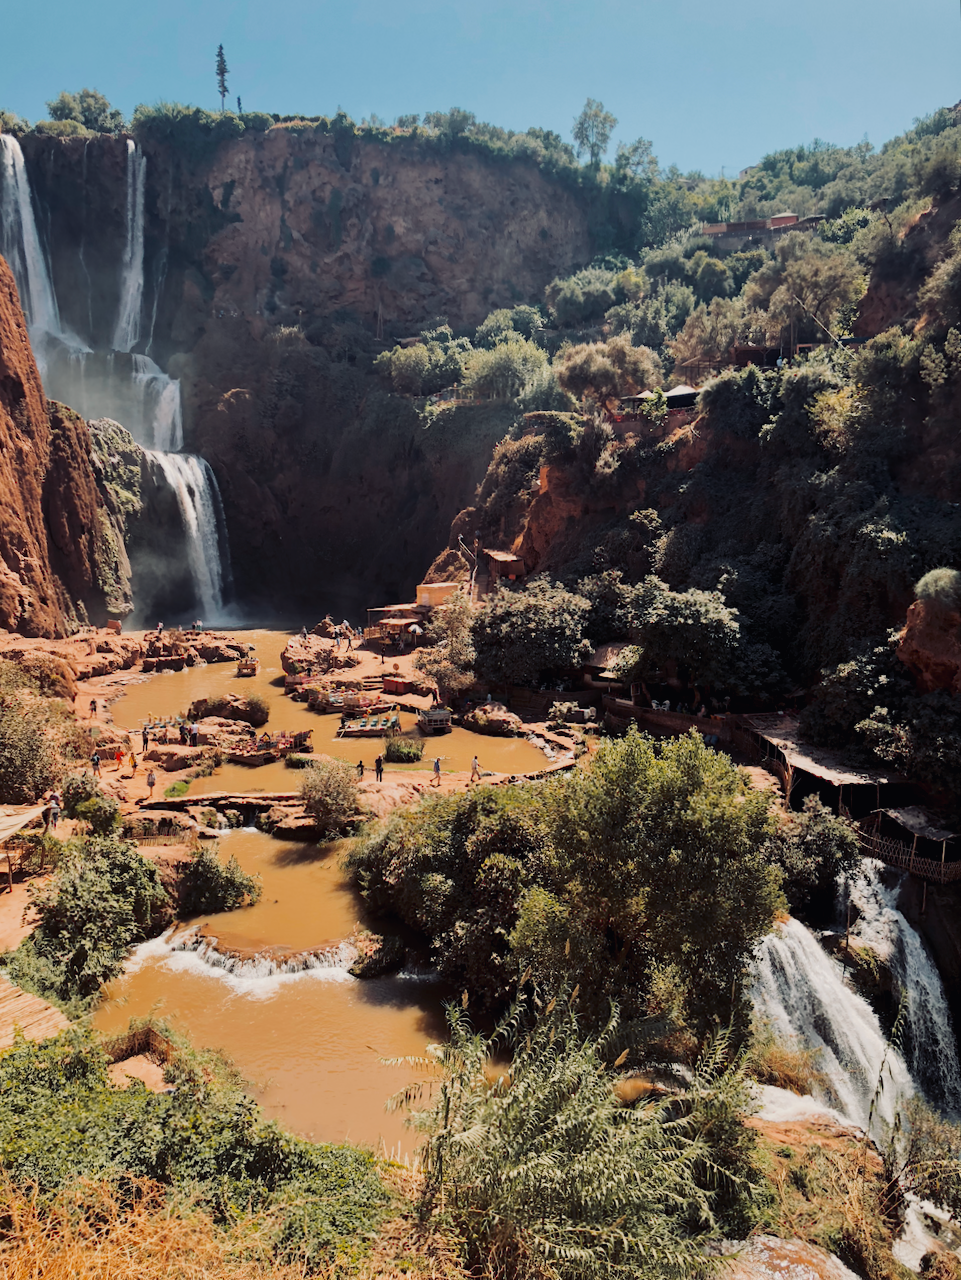 View of the cascades and pools at Ouzoud waterfall, North Africa Morocco